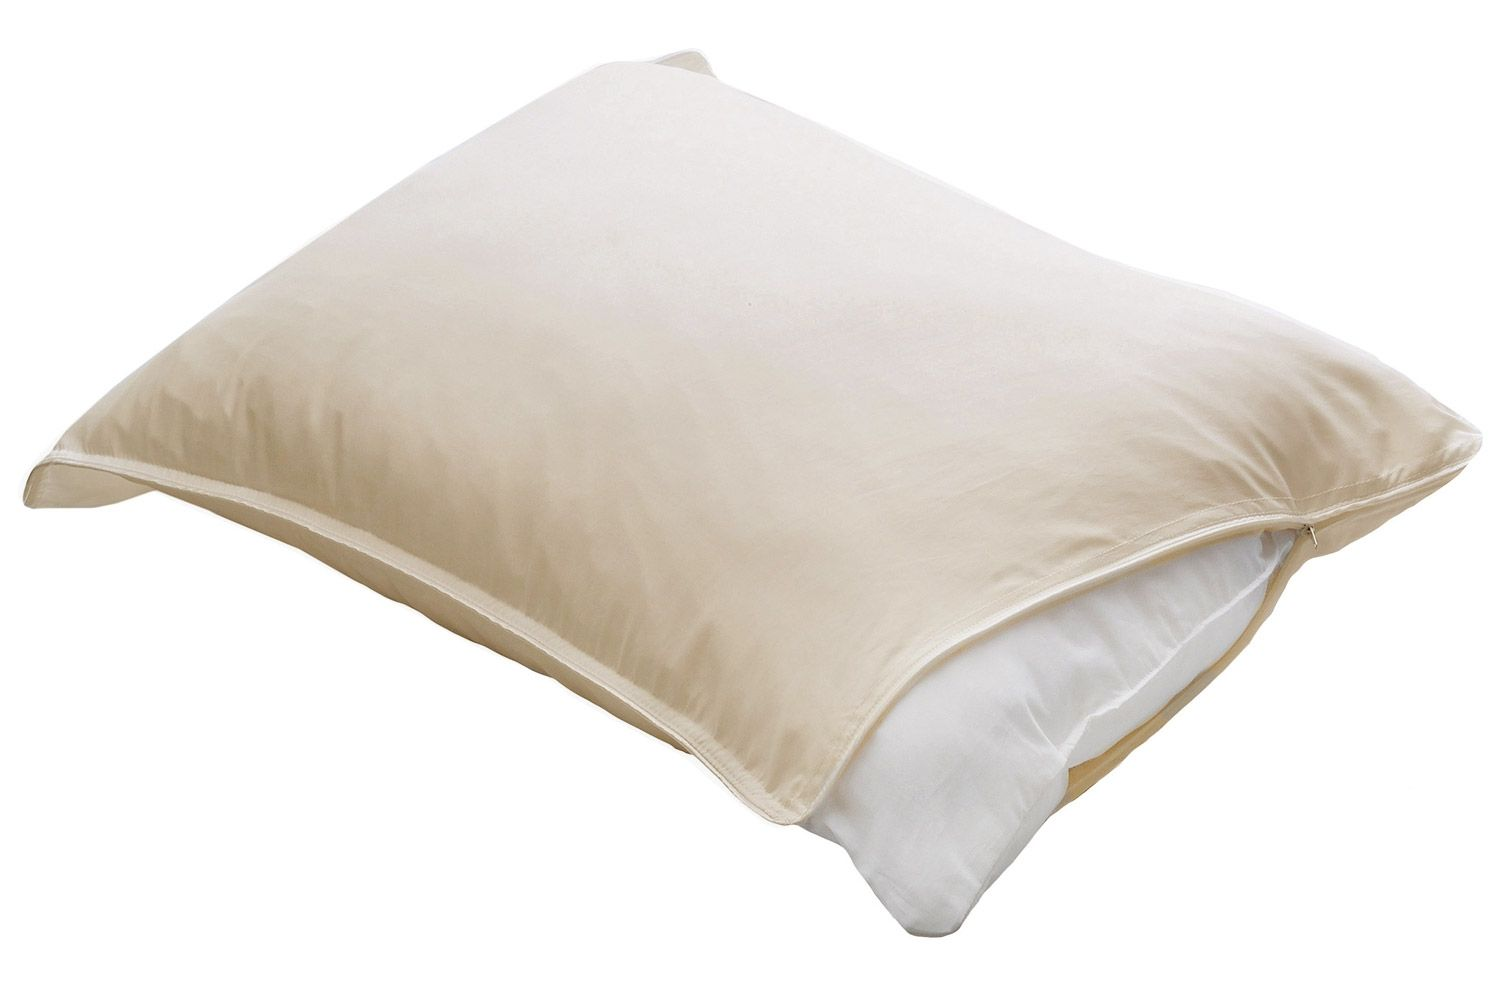 barrier fabric bed pillow protector comes in all pillow sizes